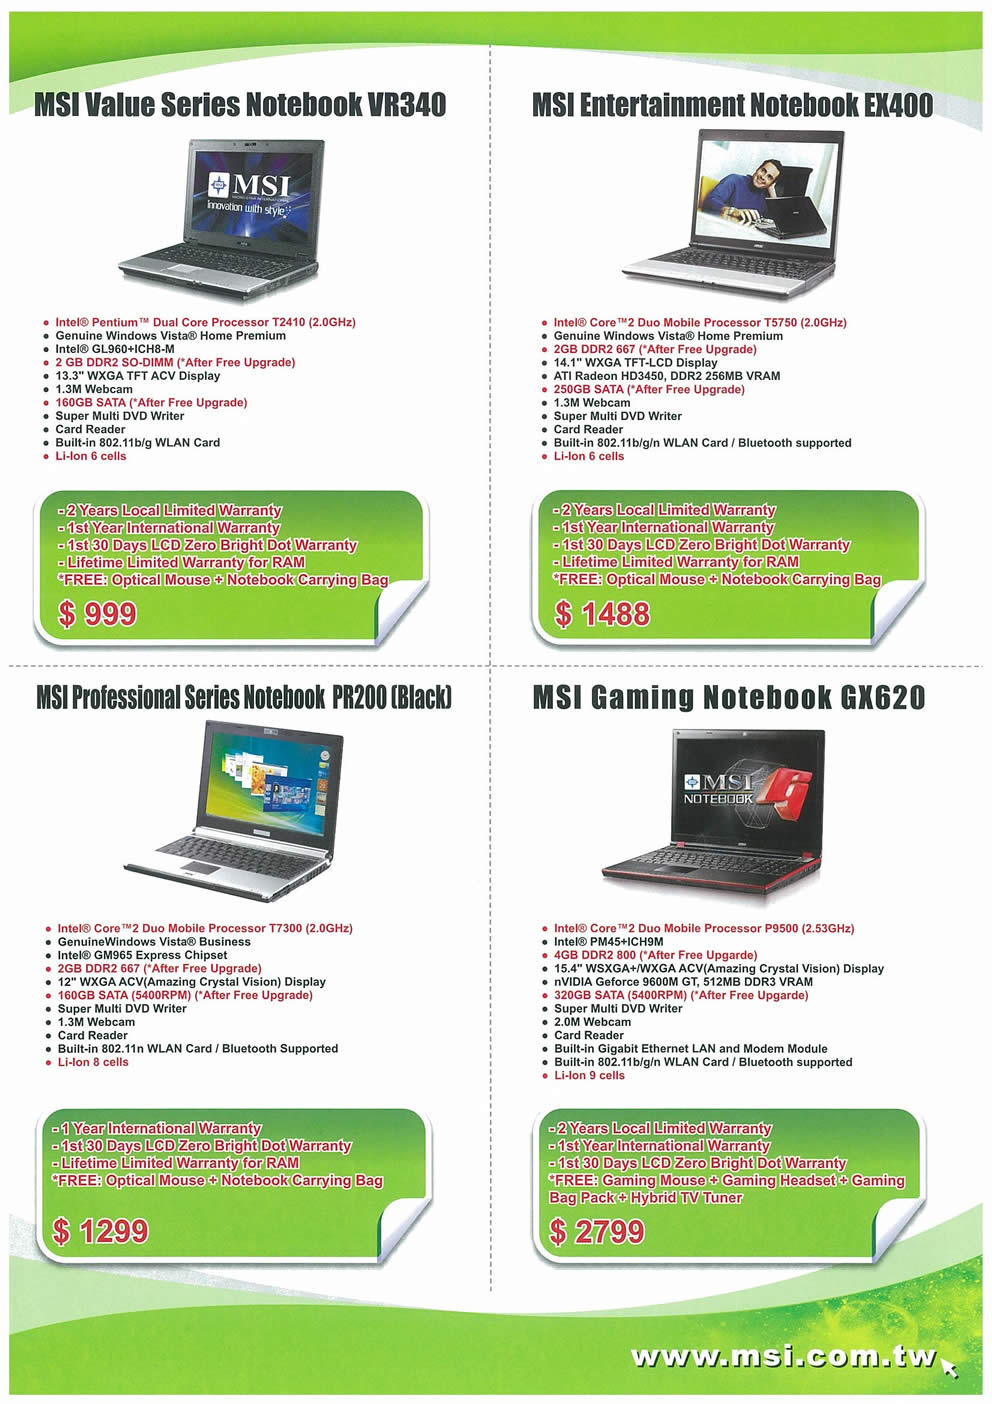 Comex 2008 price list image brochure of MSI Notebooks Page 2